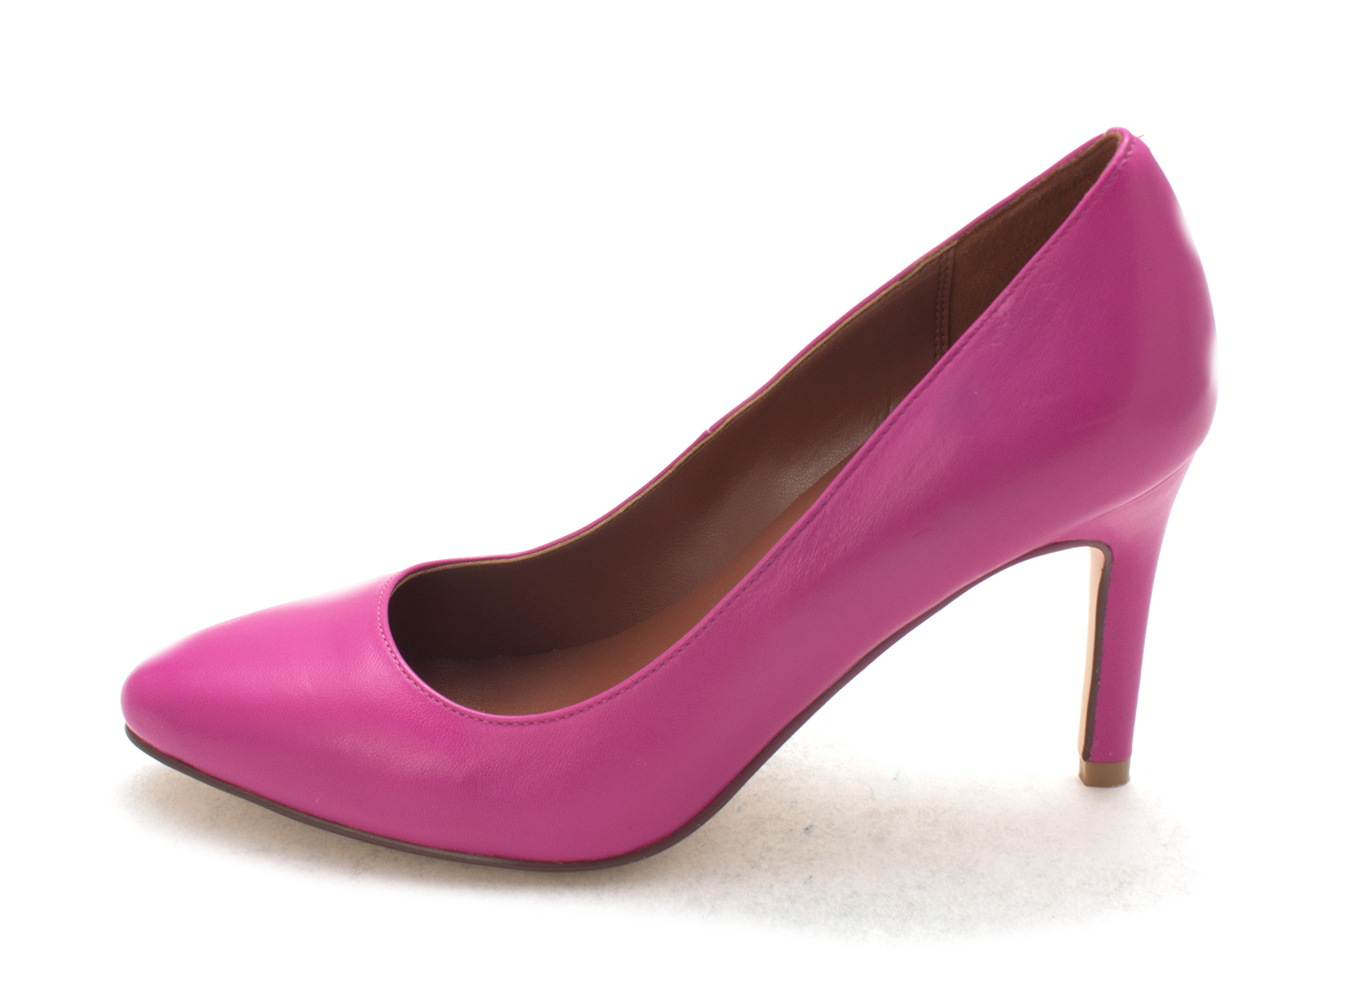 Cole Haan Womens 14A4338 Closed Toe Classic Pumps Fuchsia Red Size 6.0